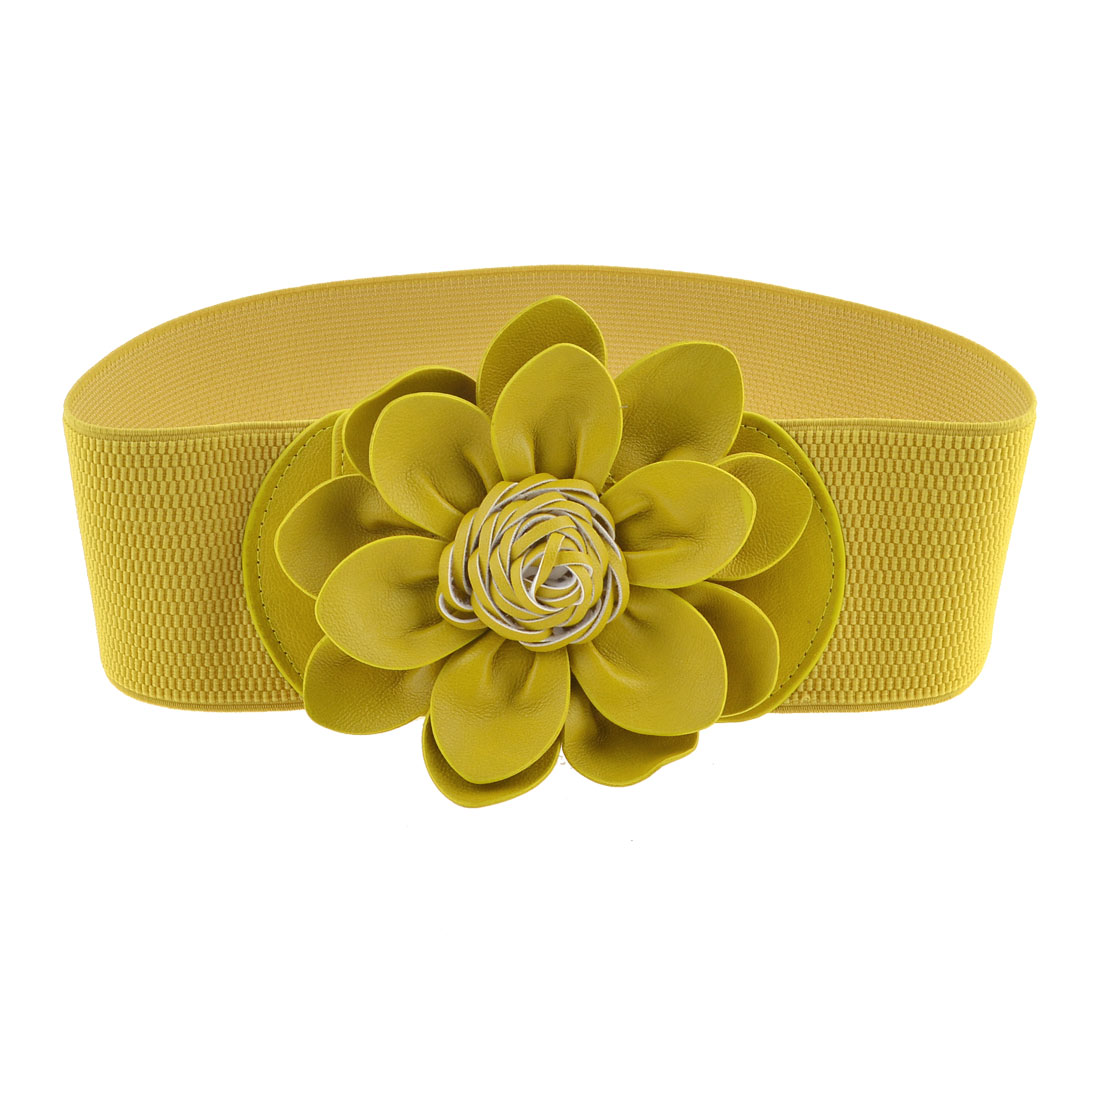 Metal Press Stud Buckle Flower Accent Stretchy Waist Belt Olive Yellow for Lady